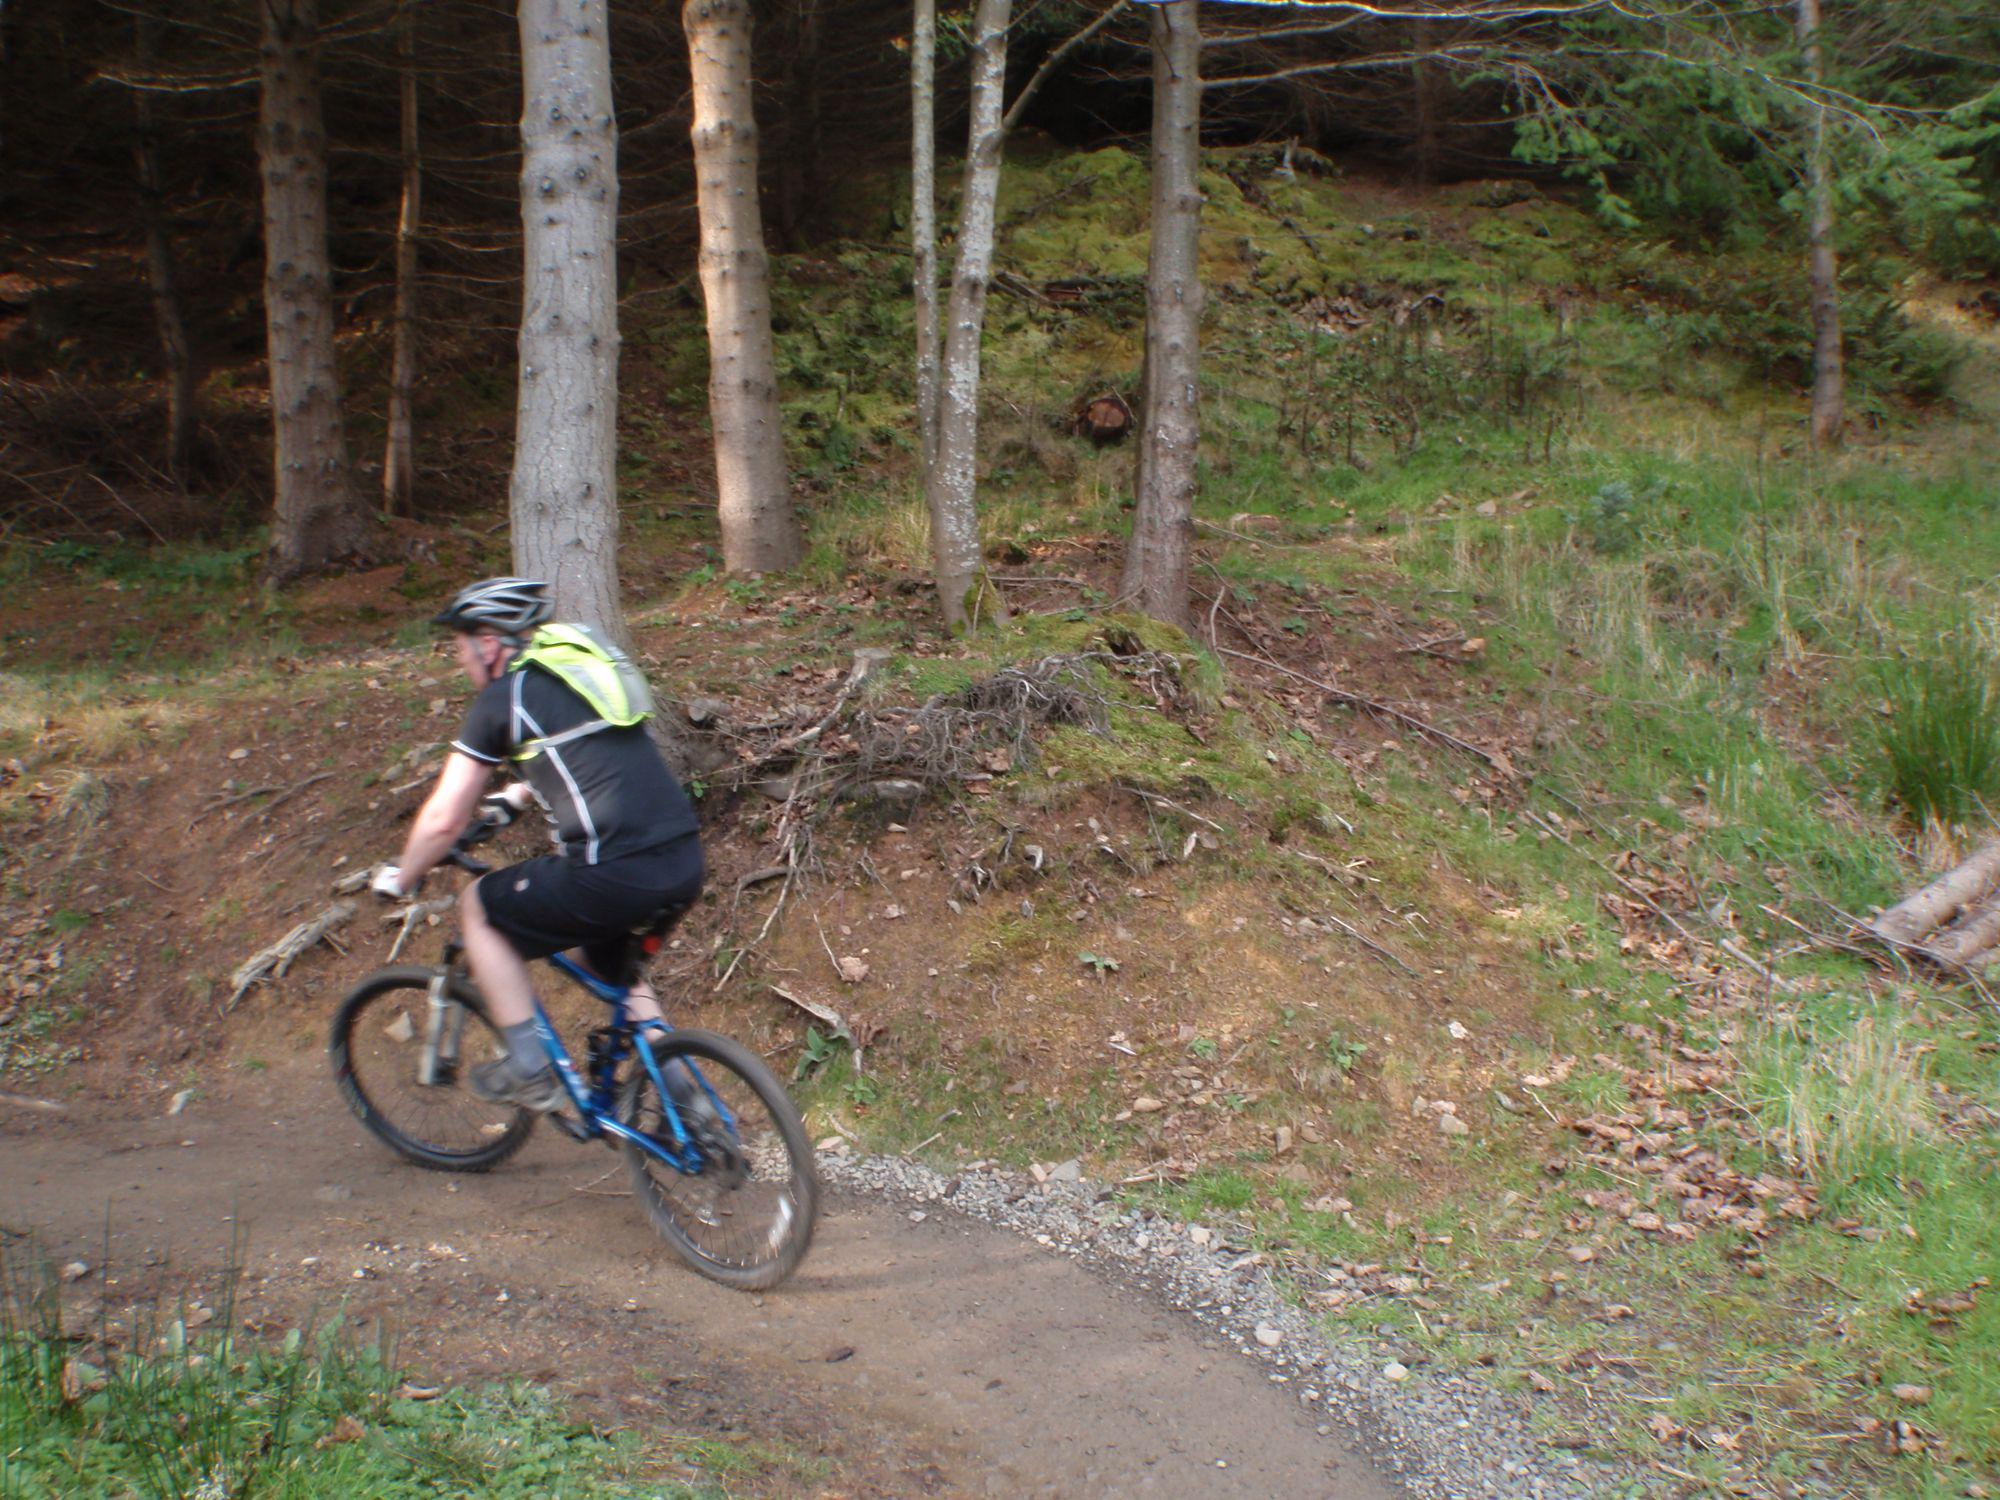 Mountain biking in the Tweed Valley